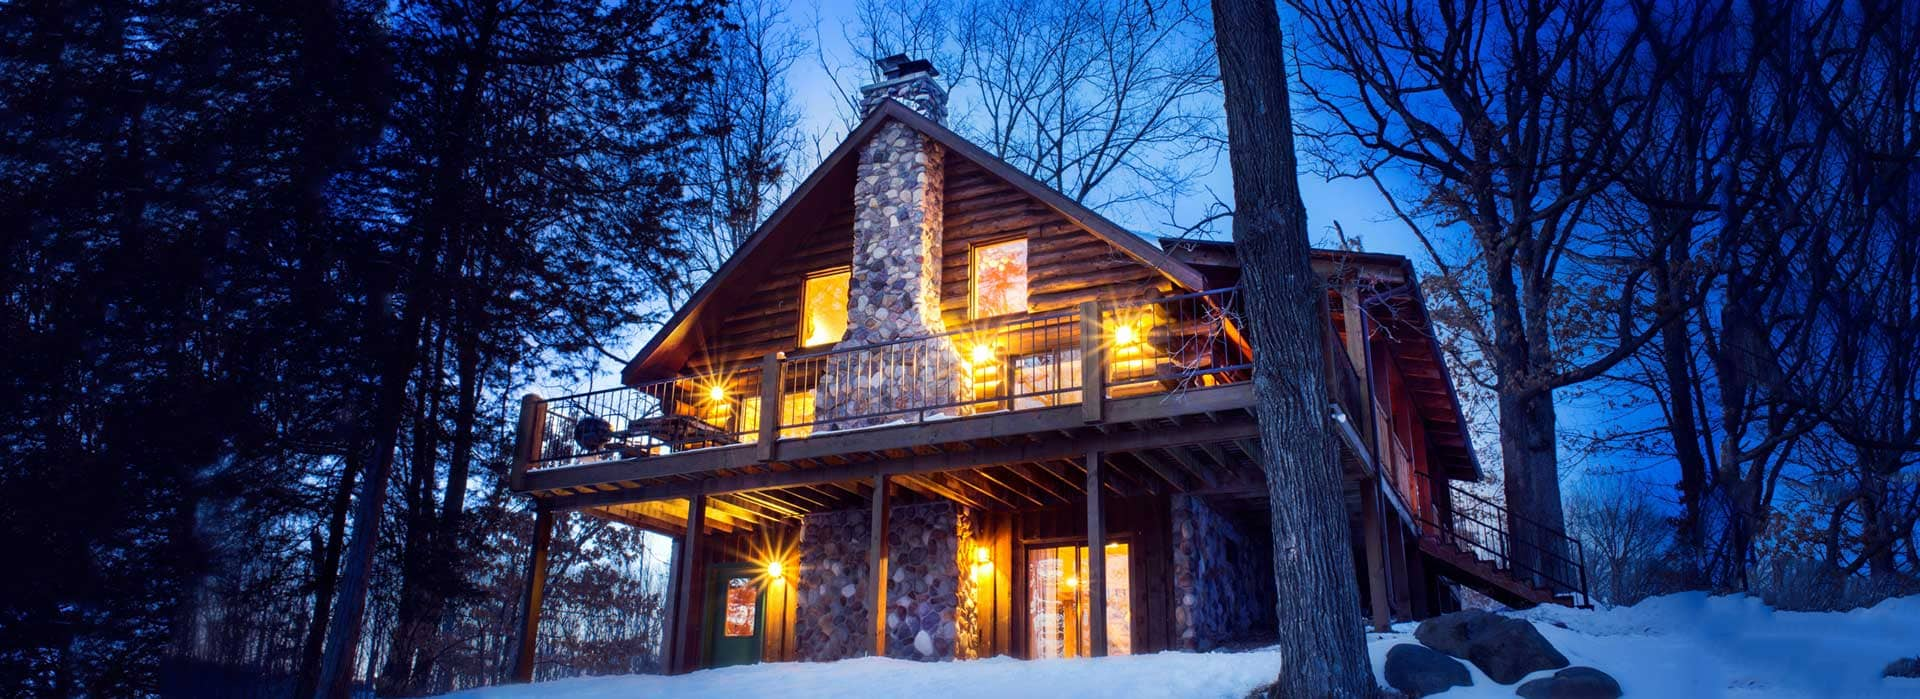 resorts top lodge review cabin of size dells wisconsin ideas to full com regard new in with great paulewog cabins wolf